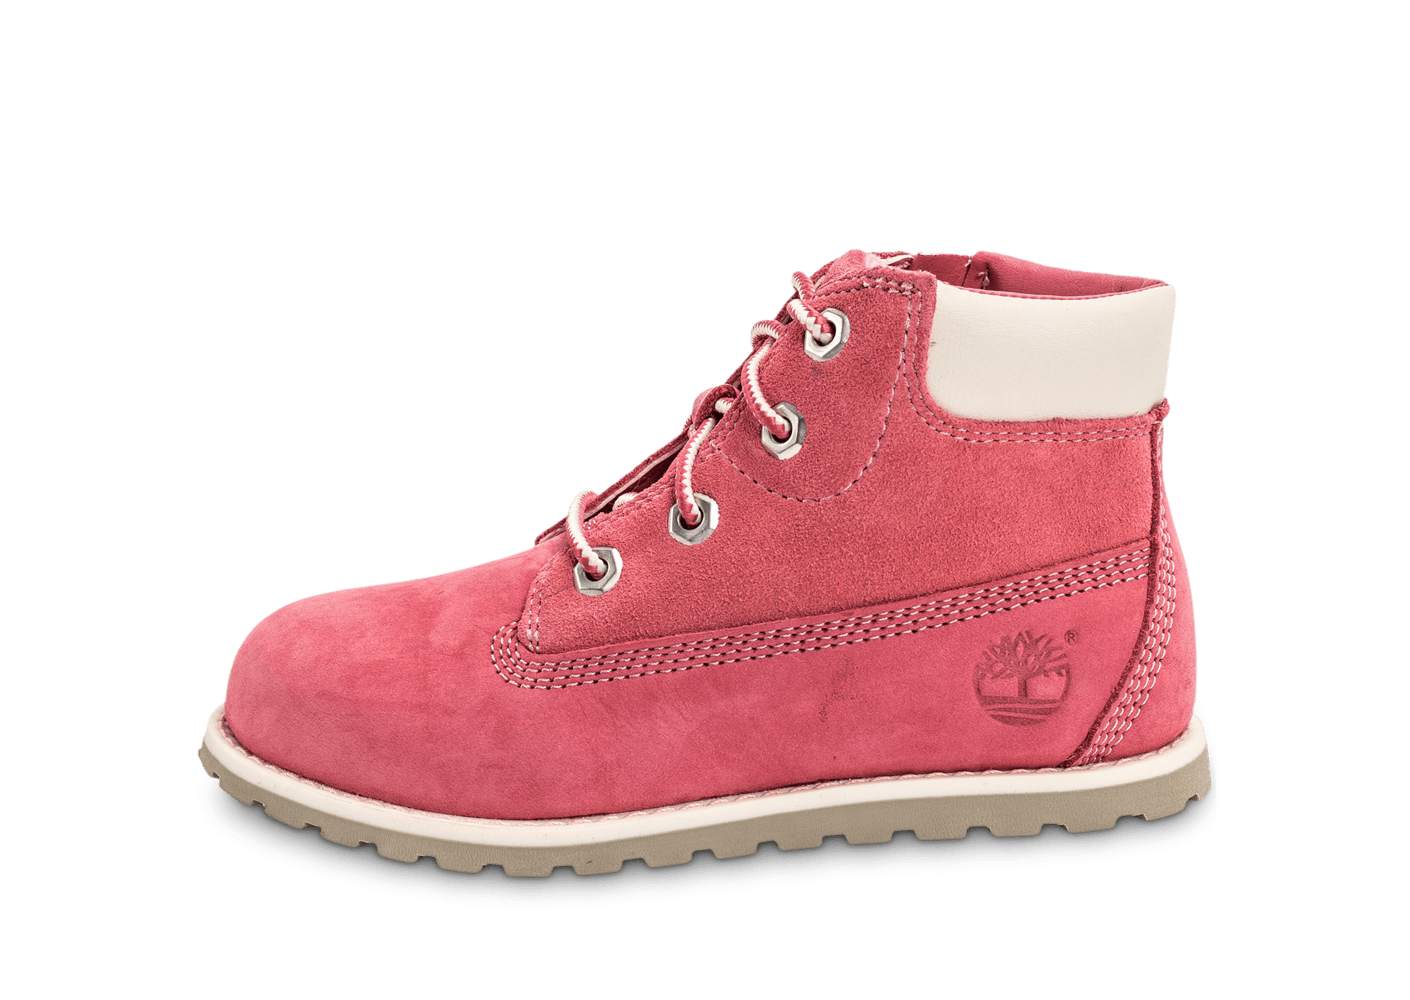 timberland roll top bottes